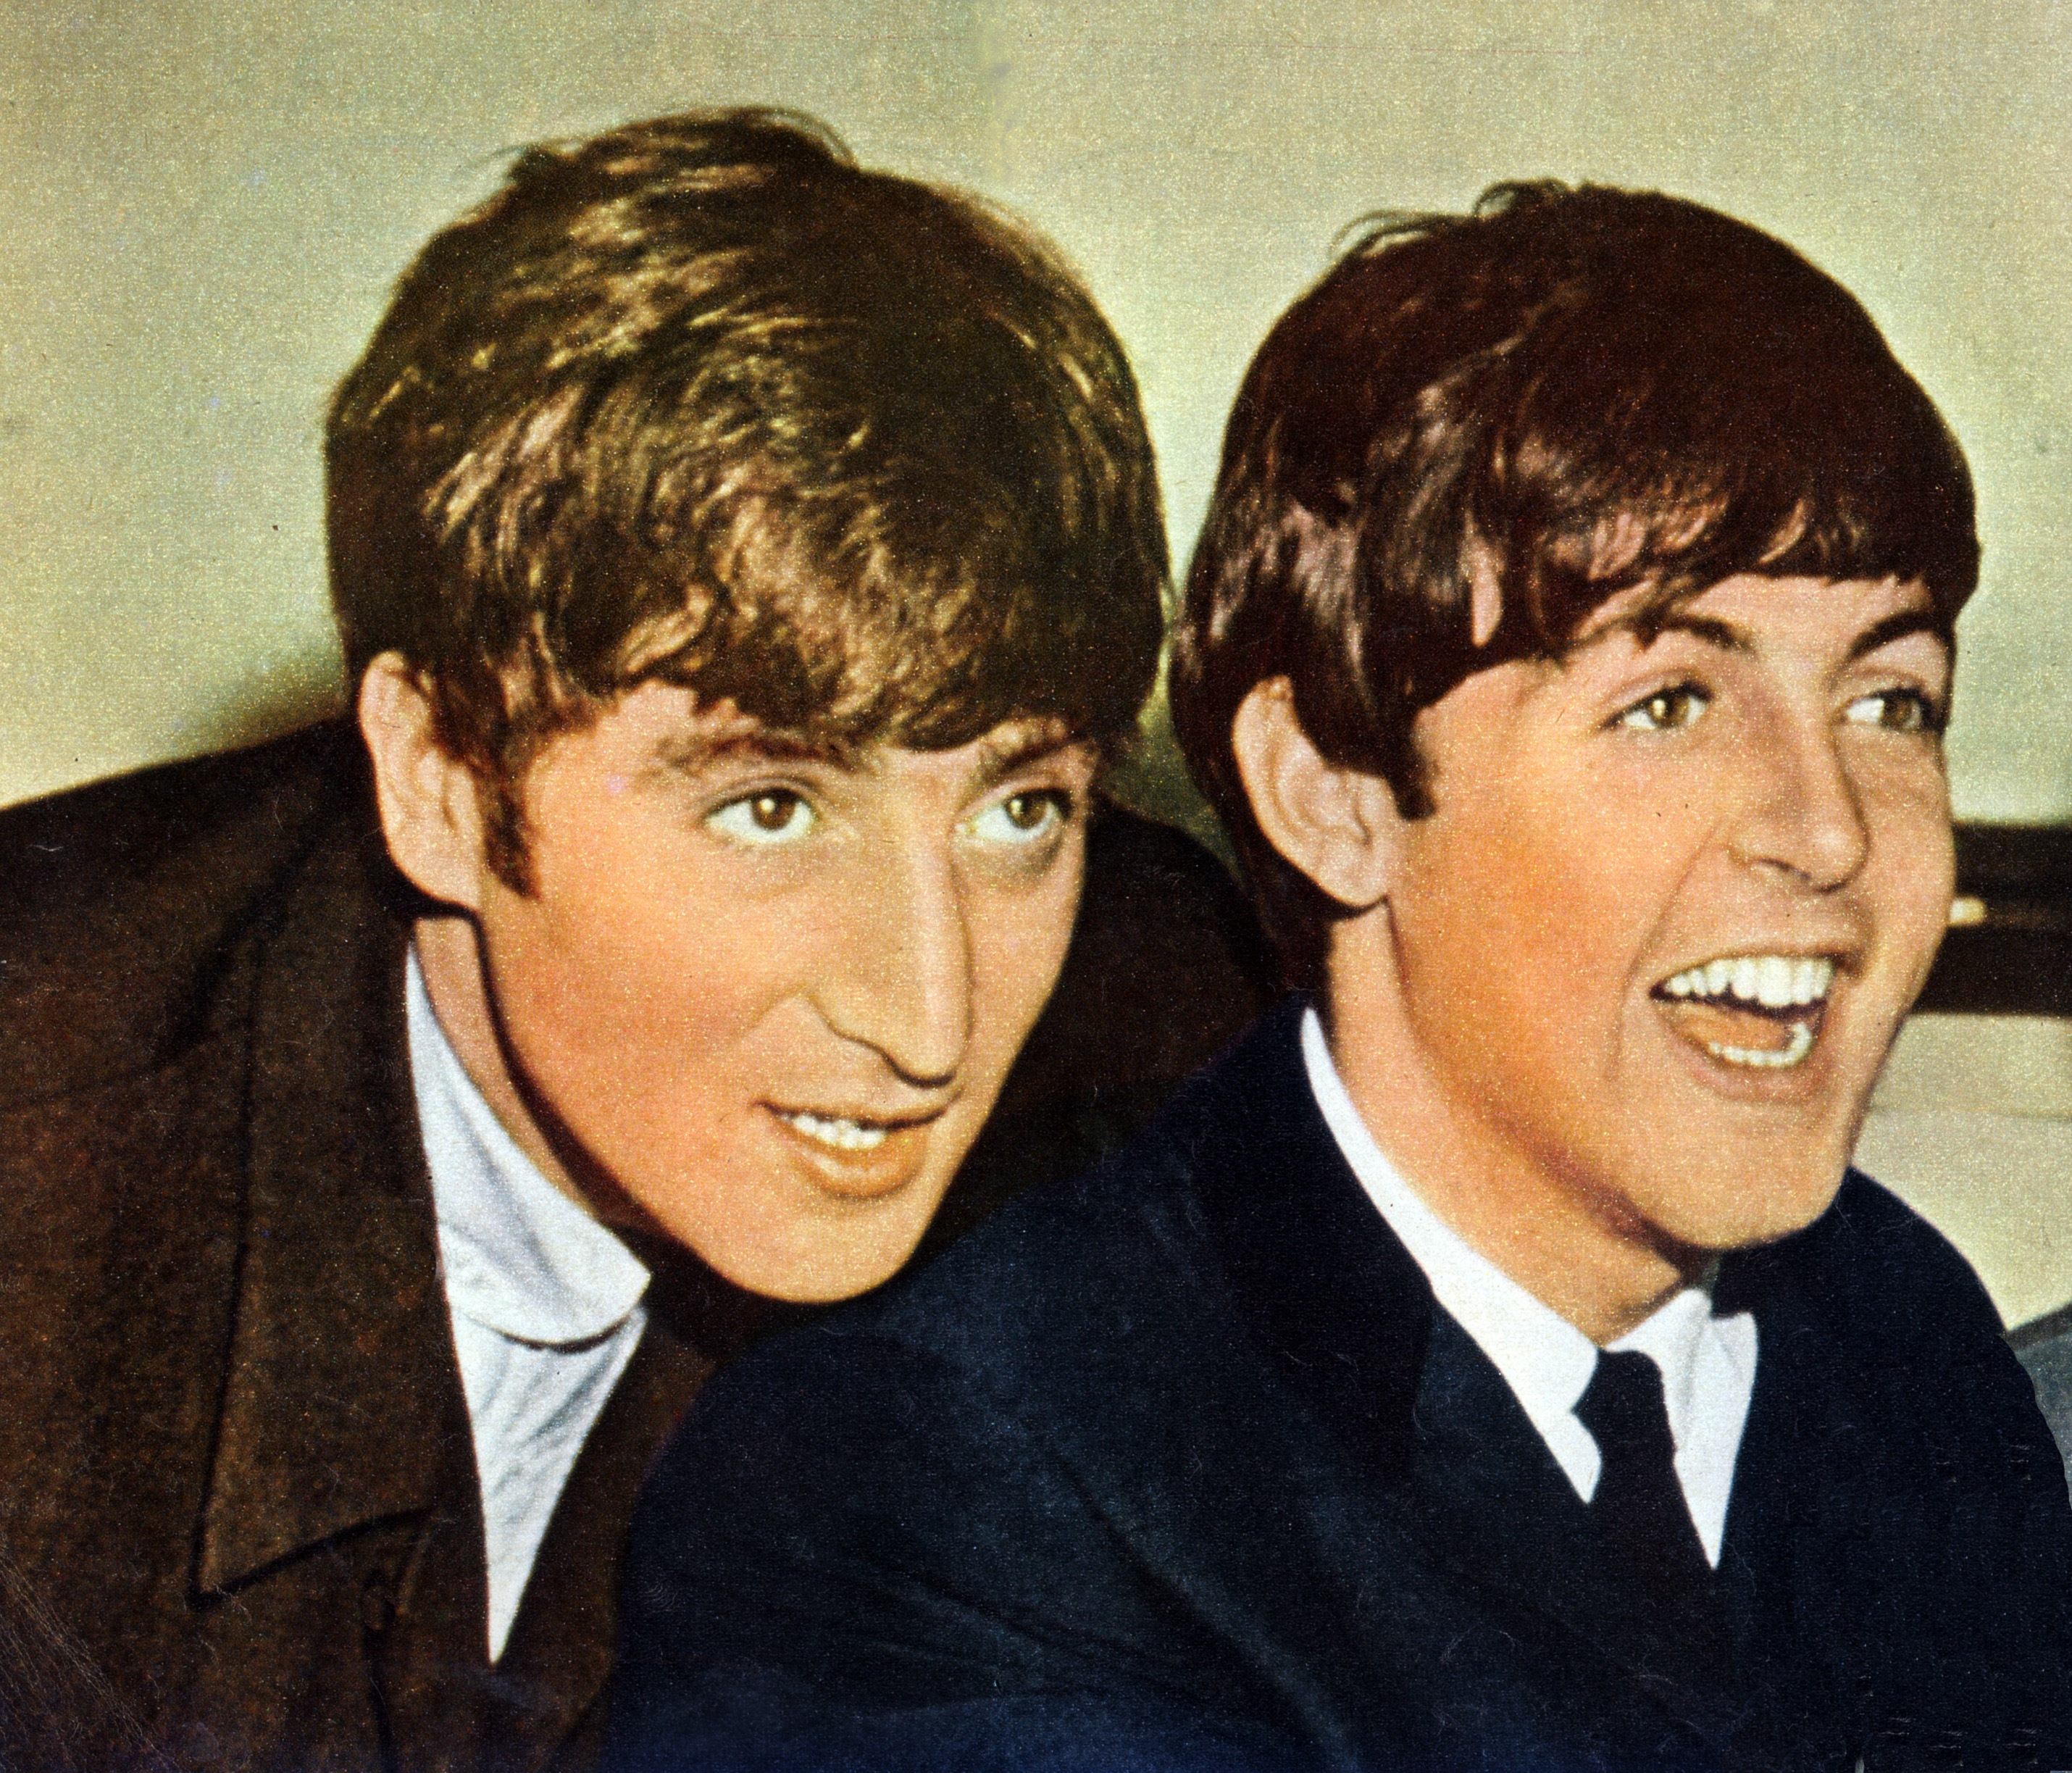 Before They Were Worldwide Sensations The Beatles Traveled Between Gigs At Dive Bars In Hamburg Germany A Rattling Old Van With Broken Window